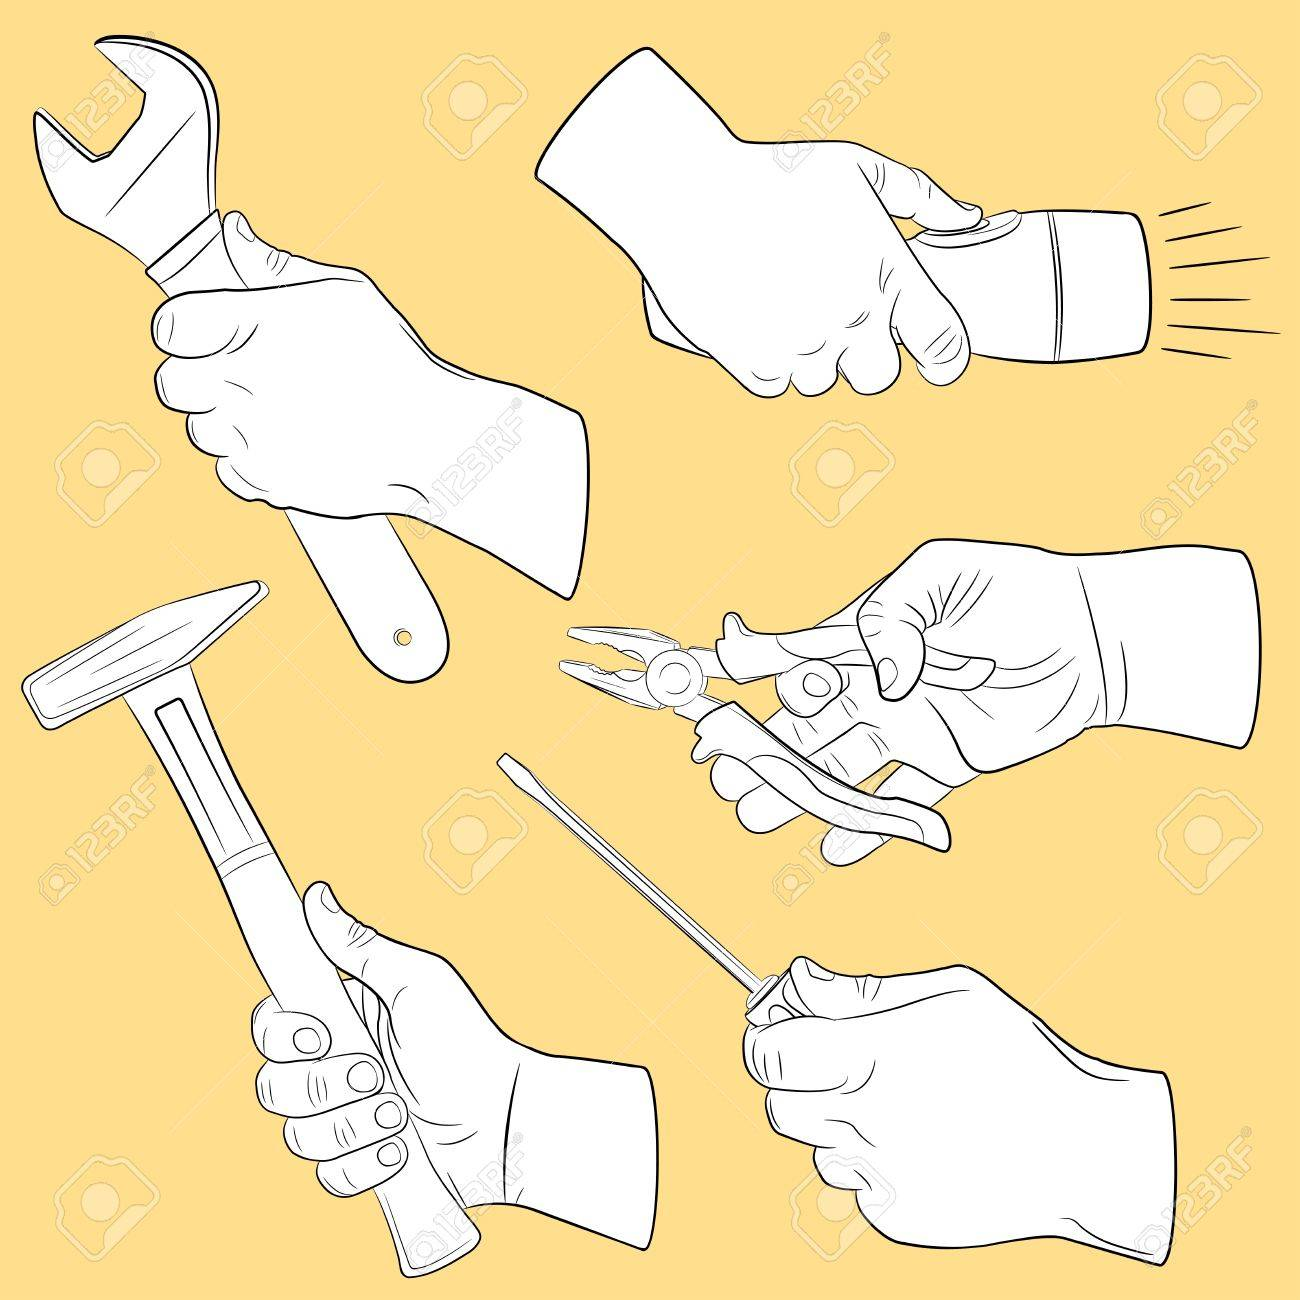 Hand tools in use - 9150158